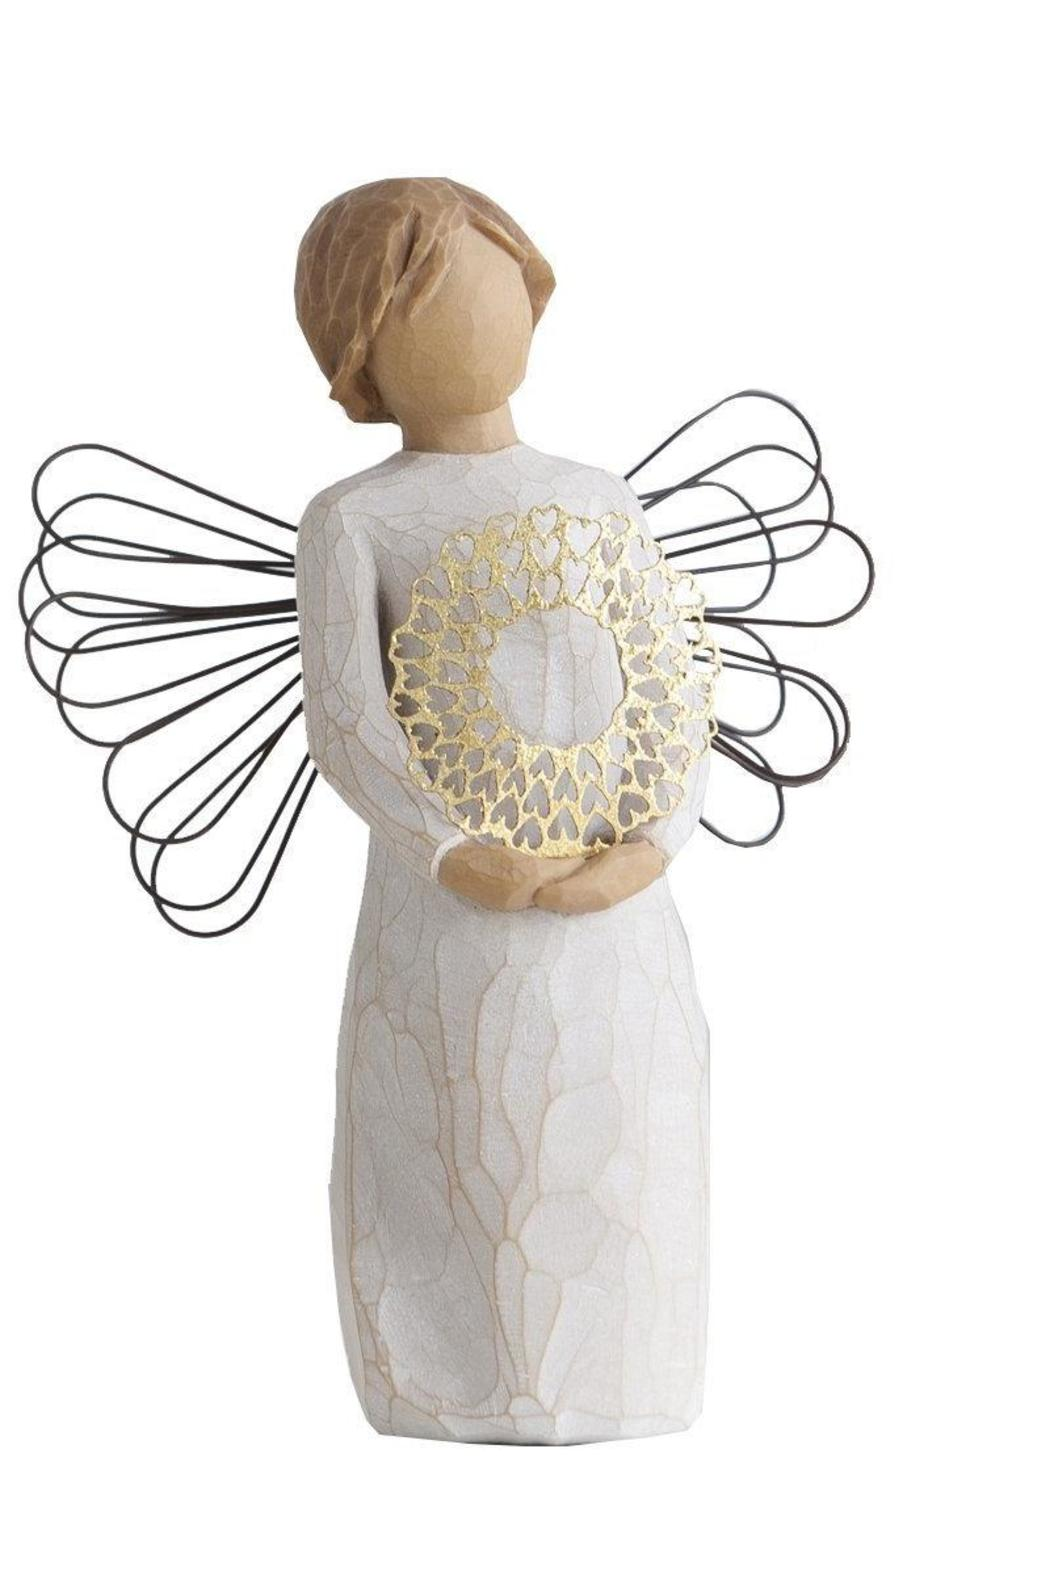 Willow Tree(r) by Susan Lordi, from DEMDACO Sweetheart Wood Figurine - Main Image